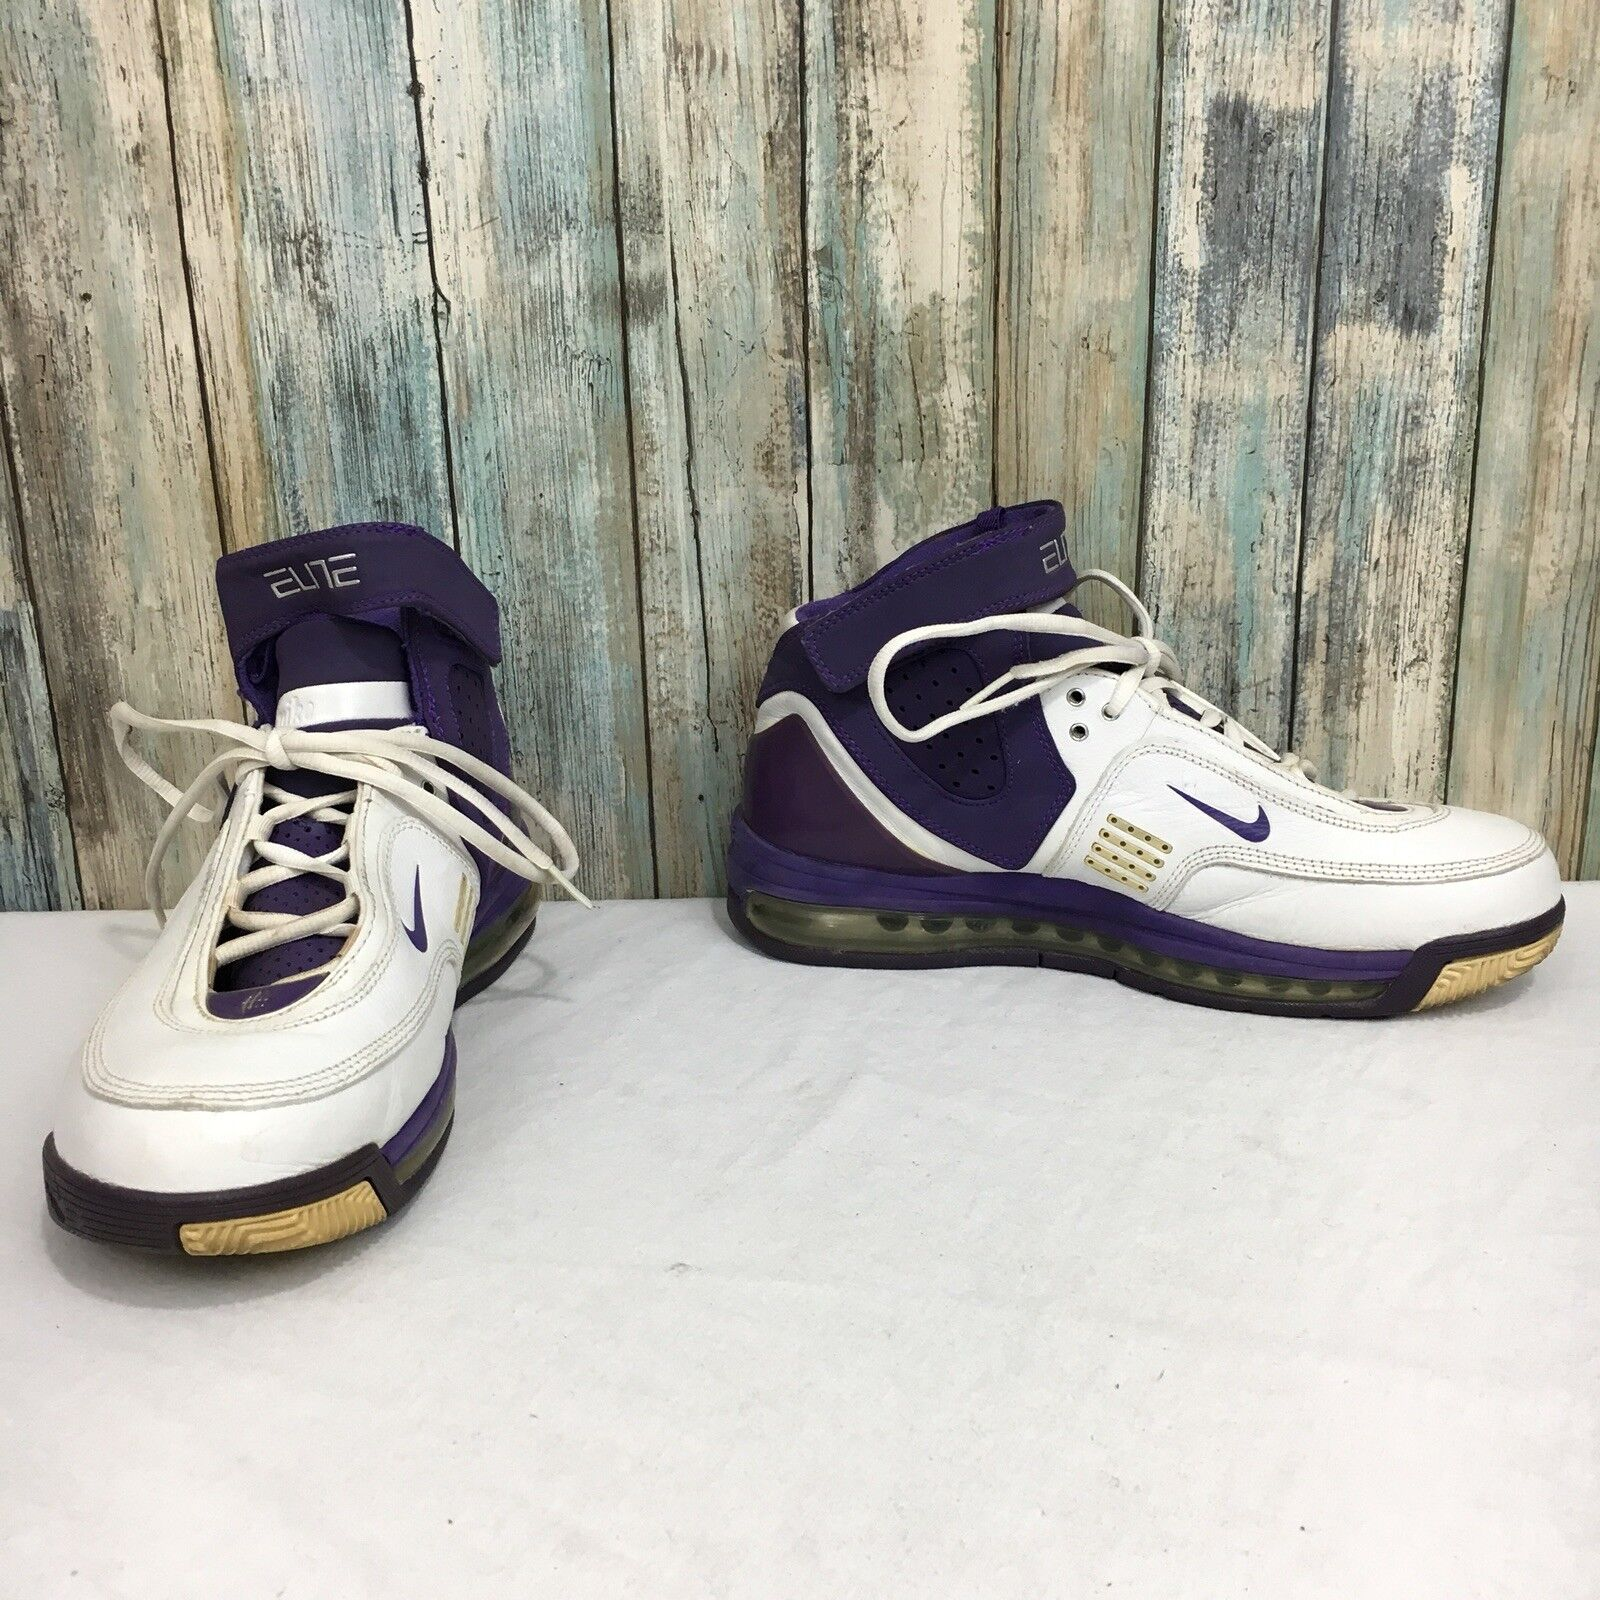 Nike Air Max Elite 2006 Men's 8.5 White Purple Lace Up High Top Basketball shoes